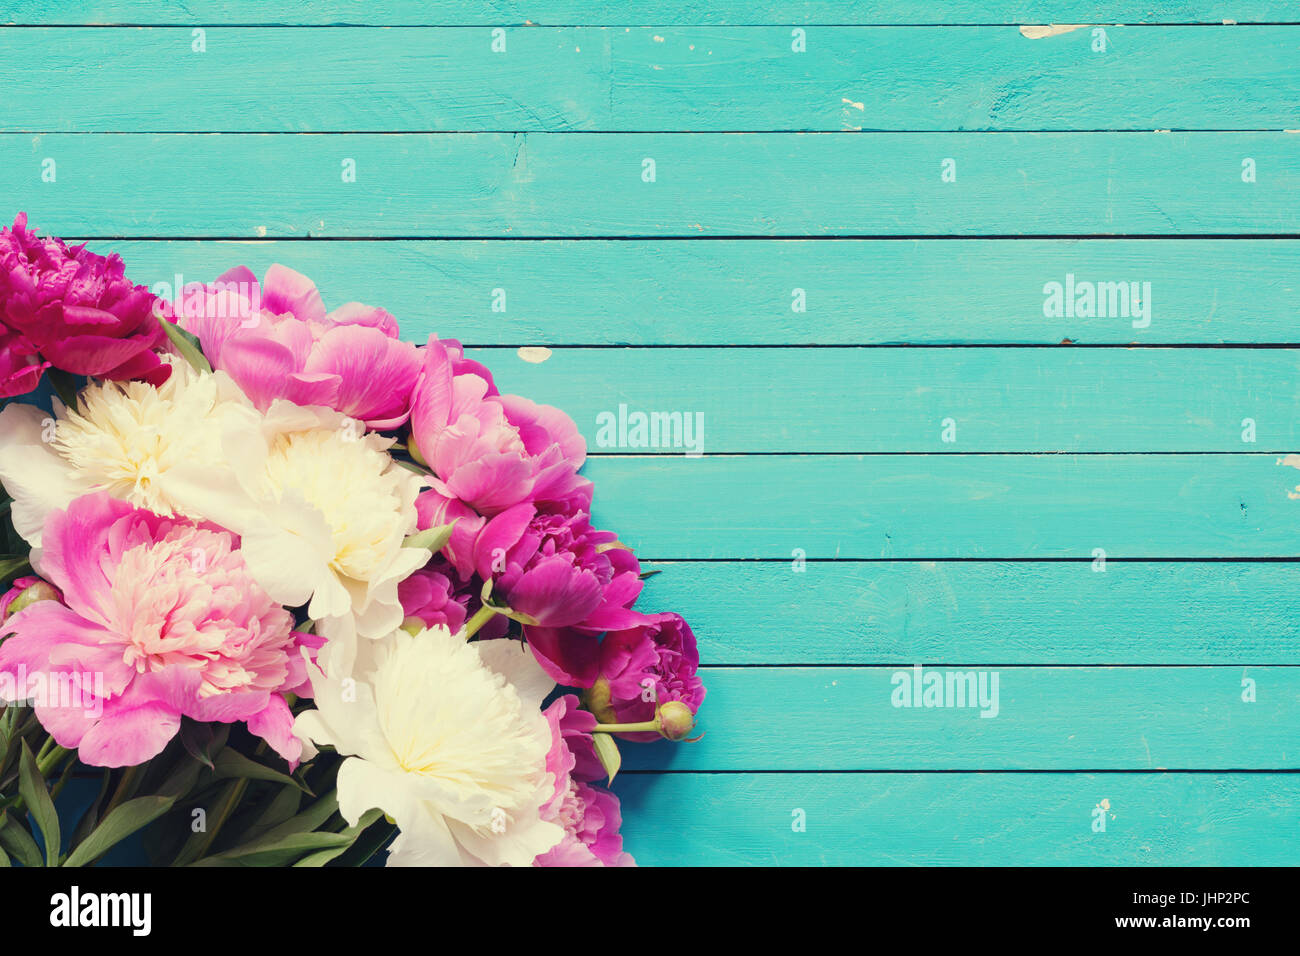 7ccacf0a8acb Floral frame   background with beautiful pink